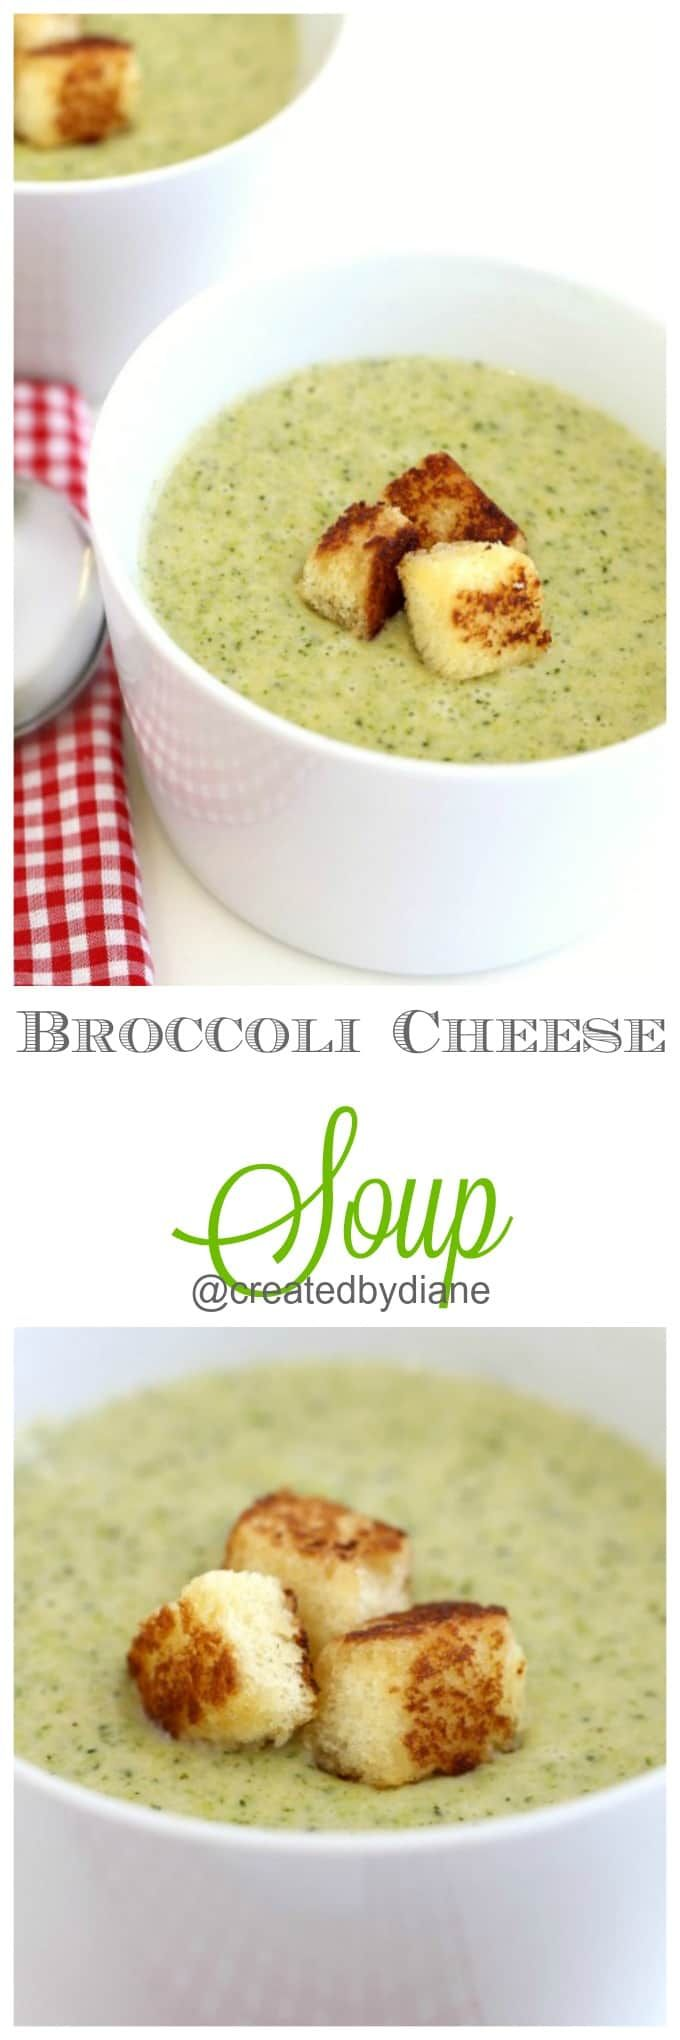 Broccoli Cheese Soup from @createdbydiane